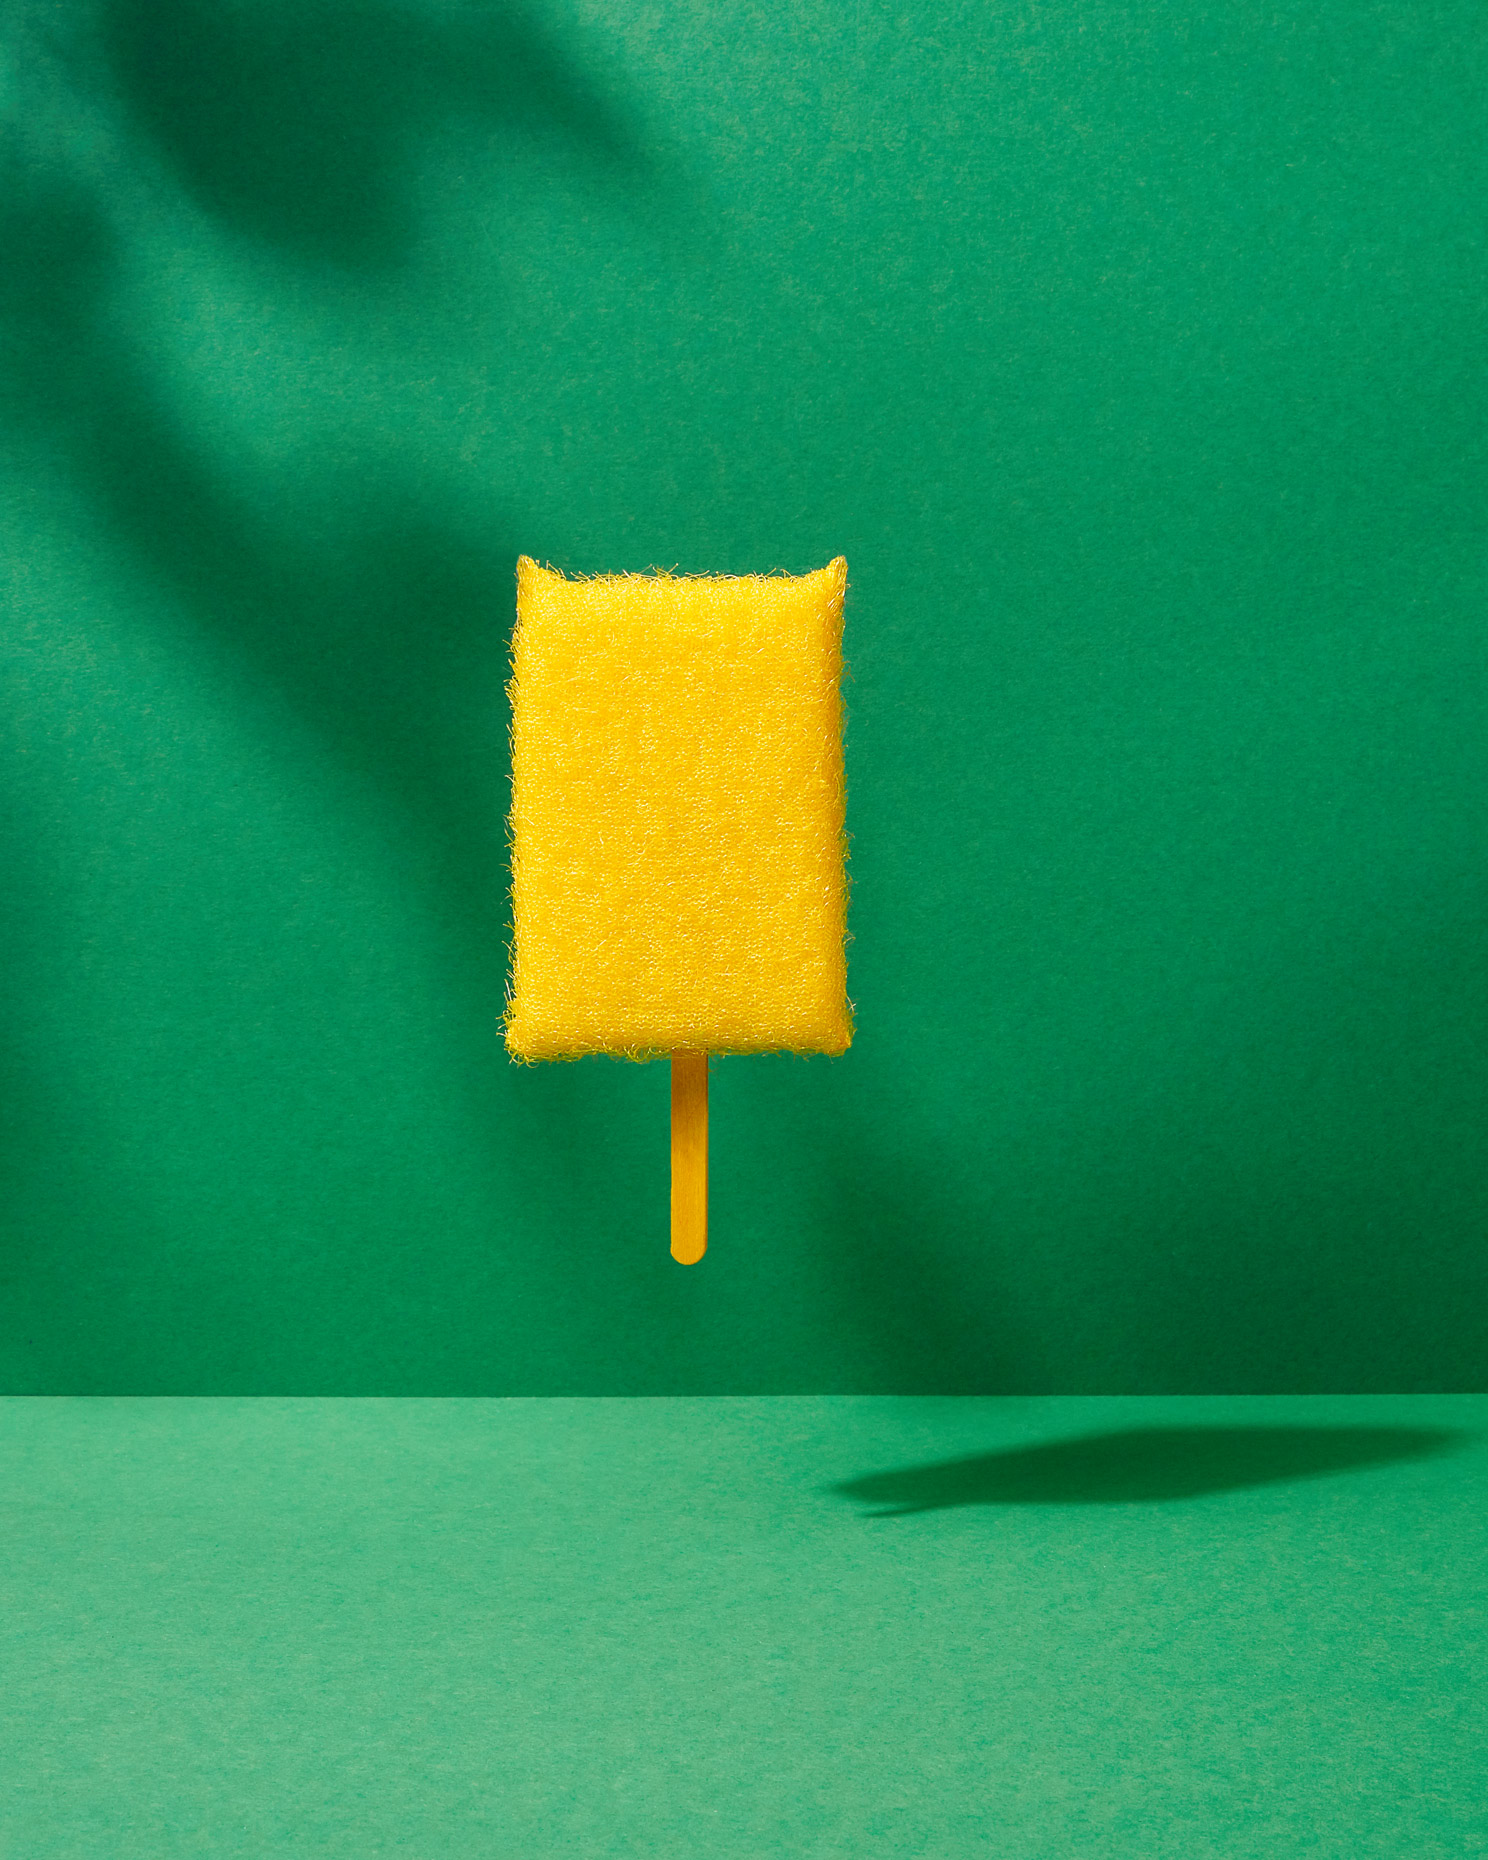 creative still life: sponge lollipop